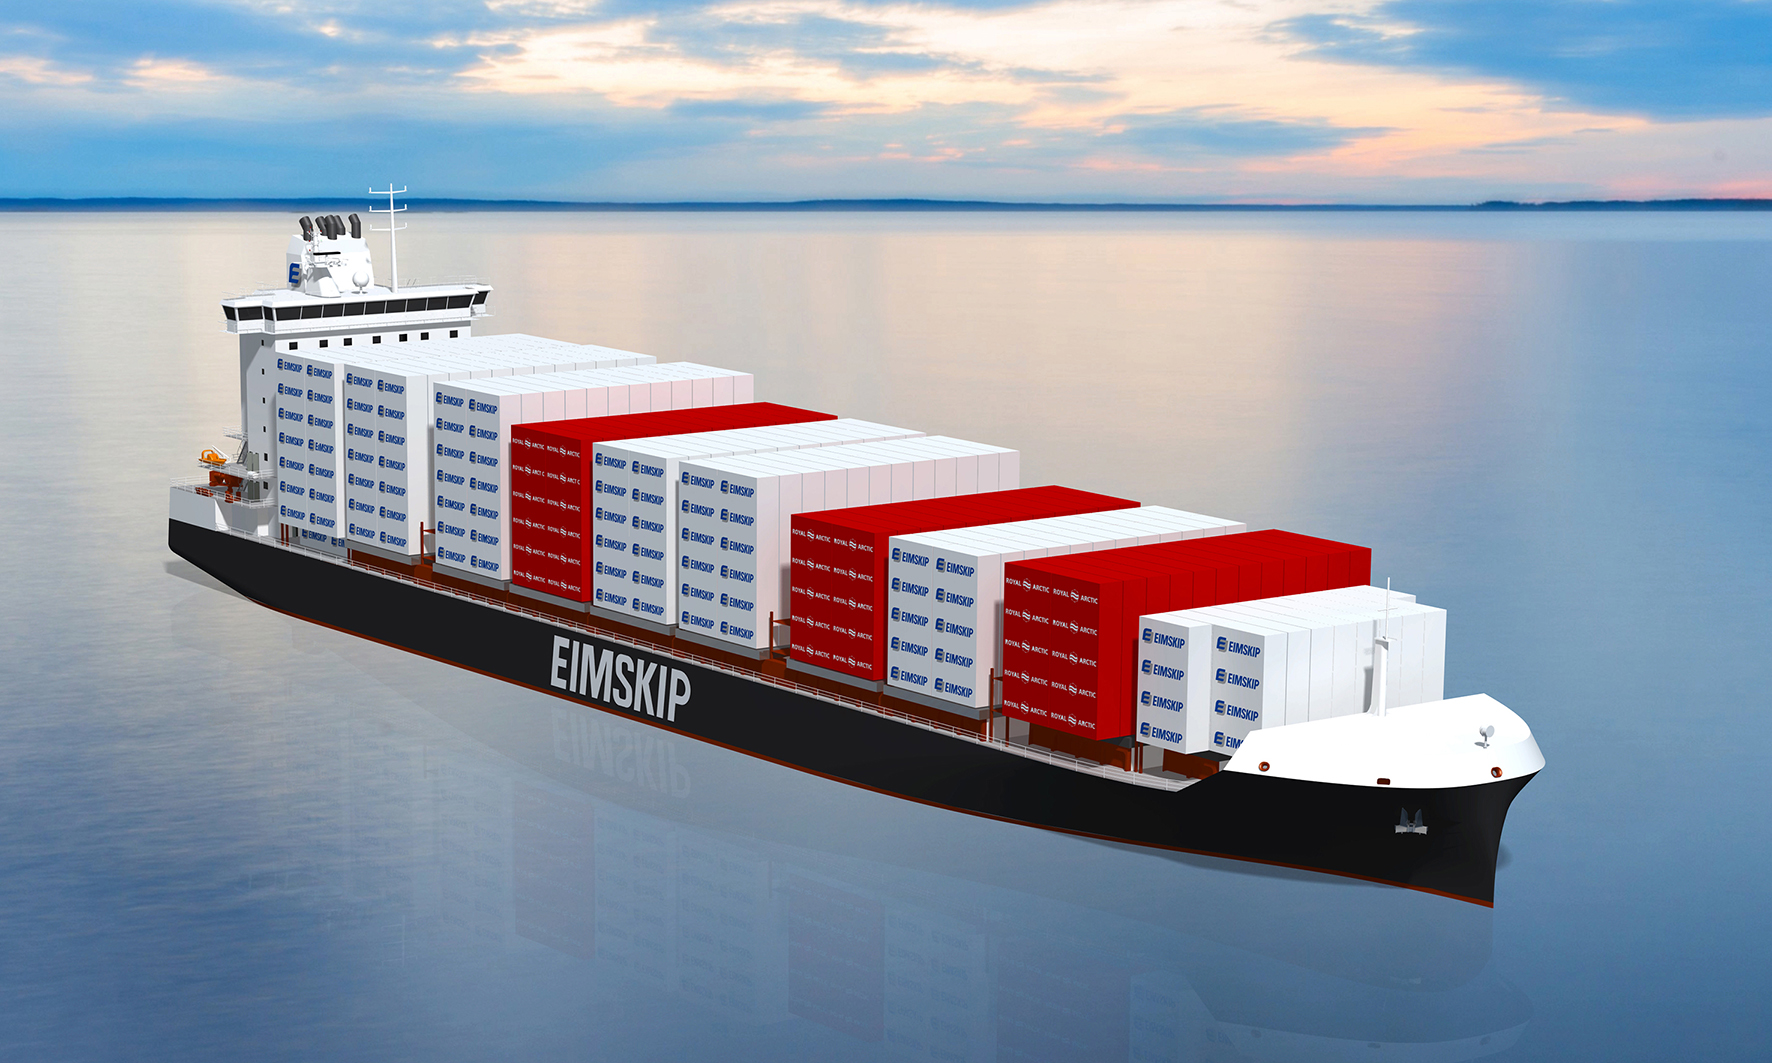 Eimskip &RAL 2,150 TEU container vessel based on Deltamarin's container feeder design